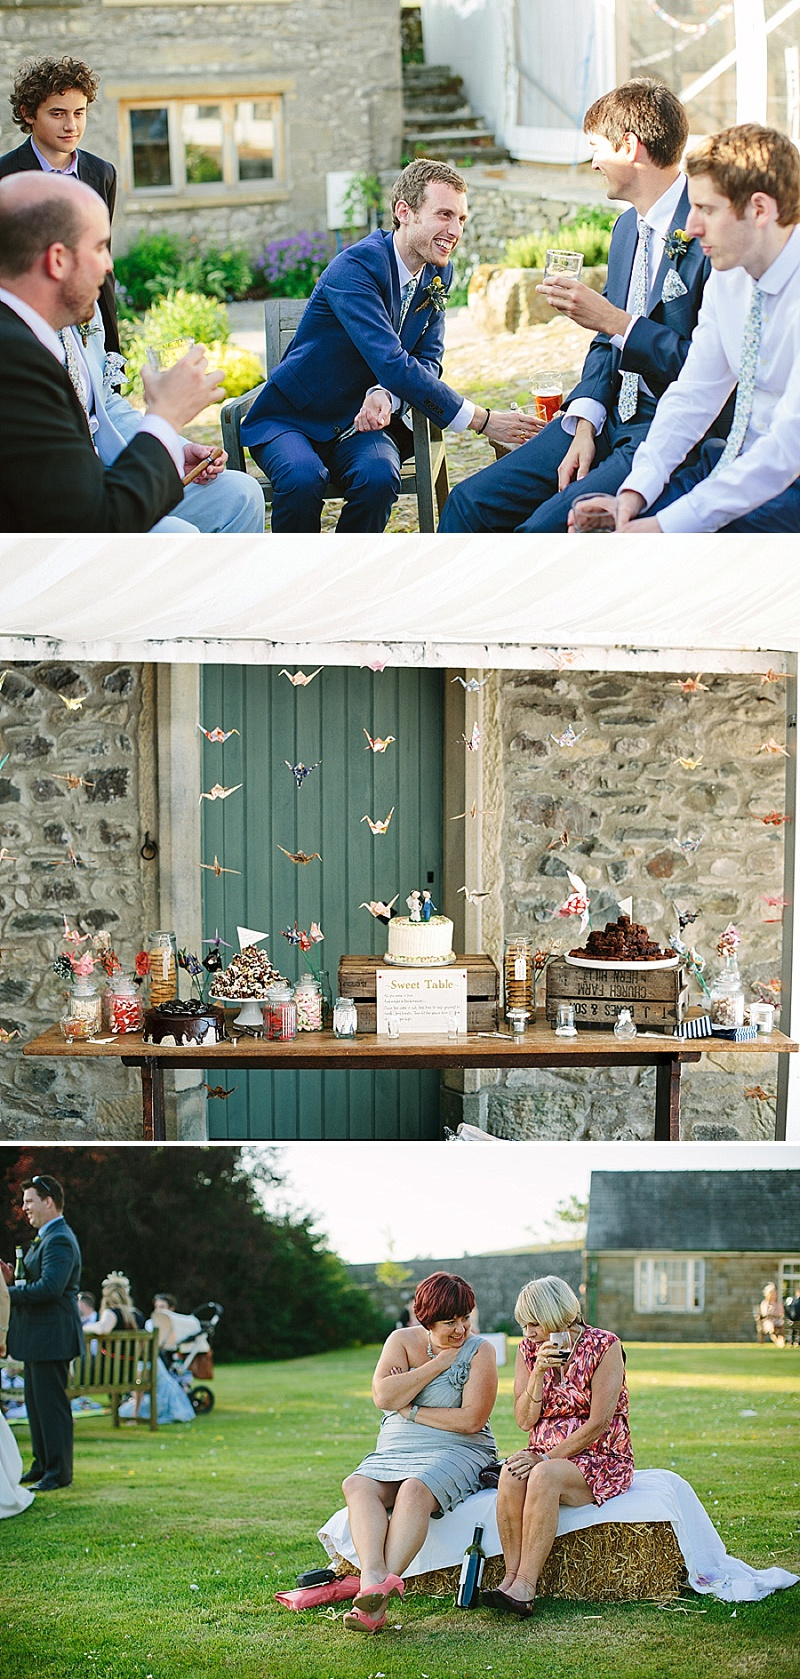 A Rustic barn wedding in Yorkshire felicia by Amanda Wyatt dress_0019